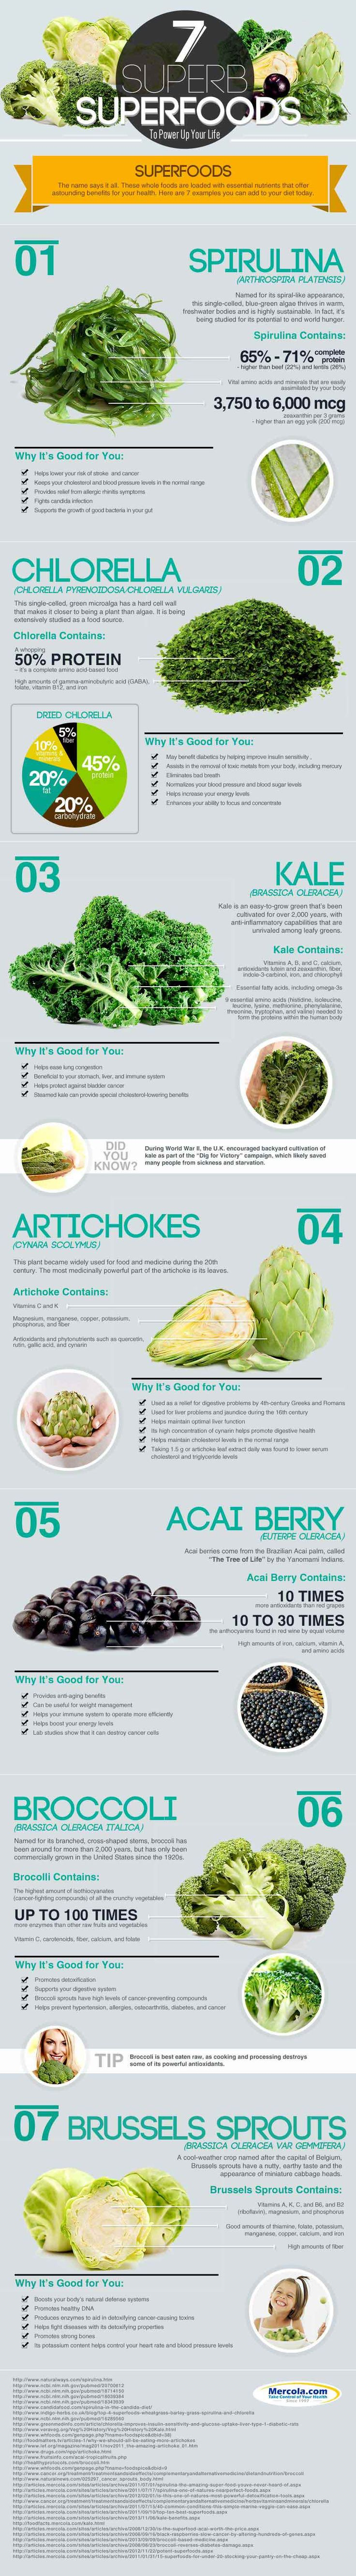 Tips to to Power Up Your Life with 7 Superb Superfoods - Tipsographic